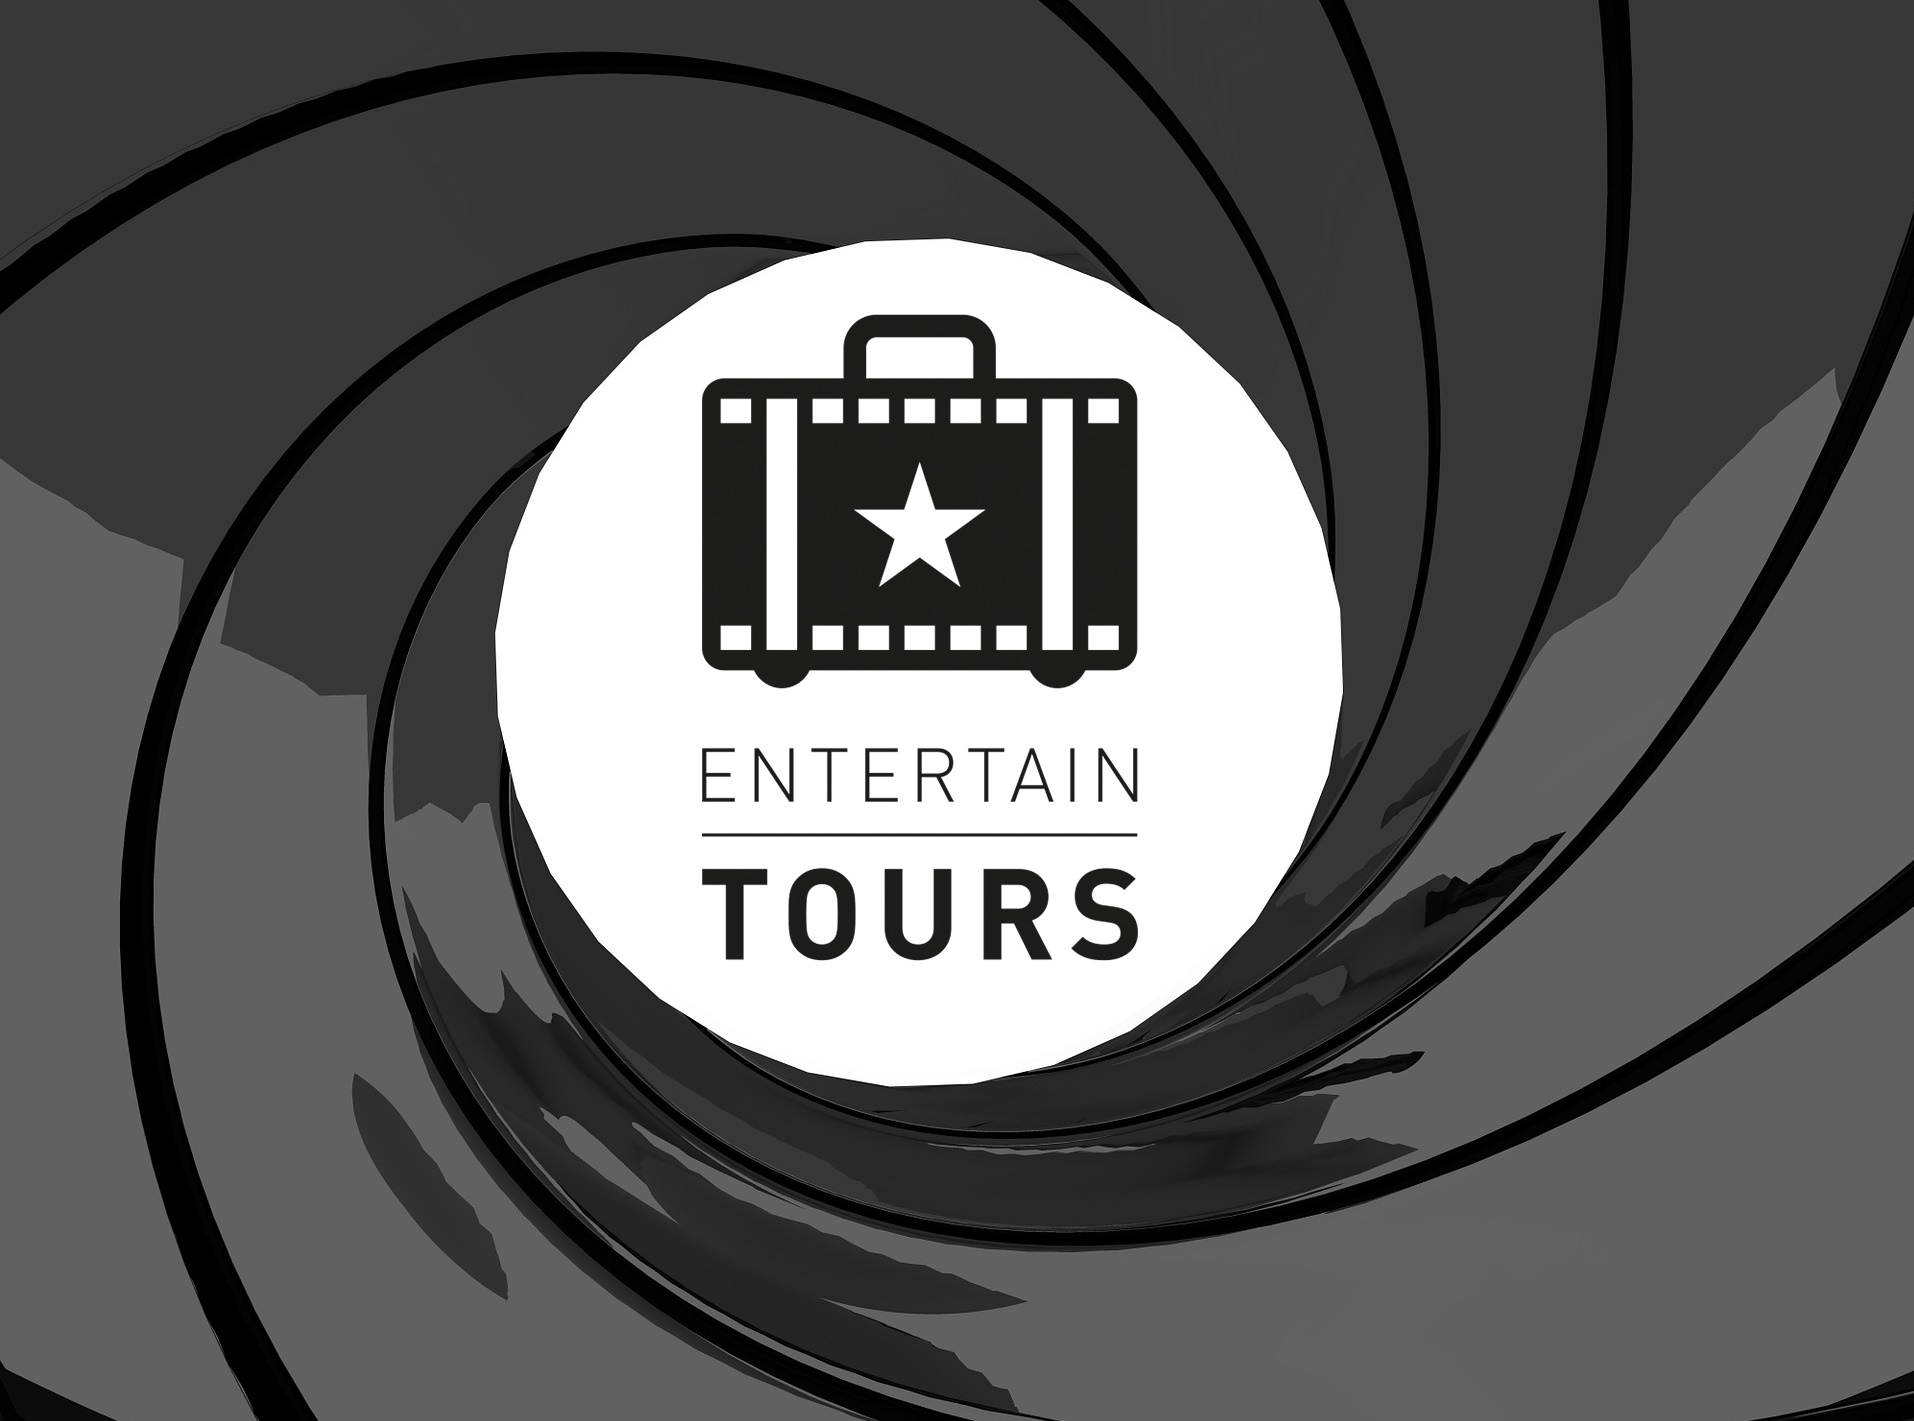 Entertain Tours James Bond